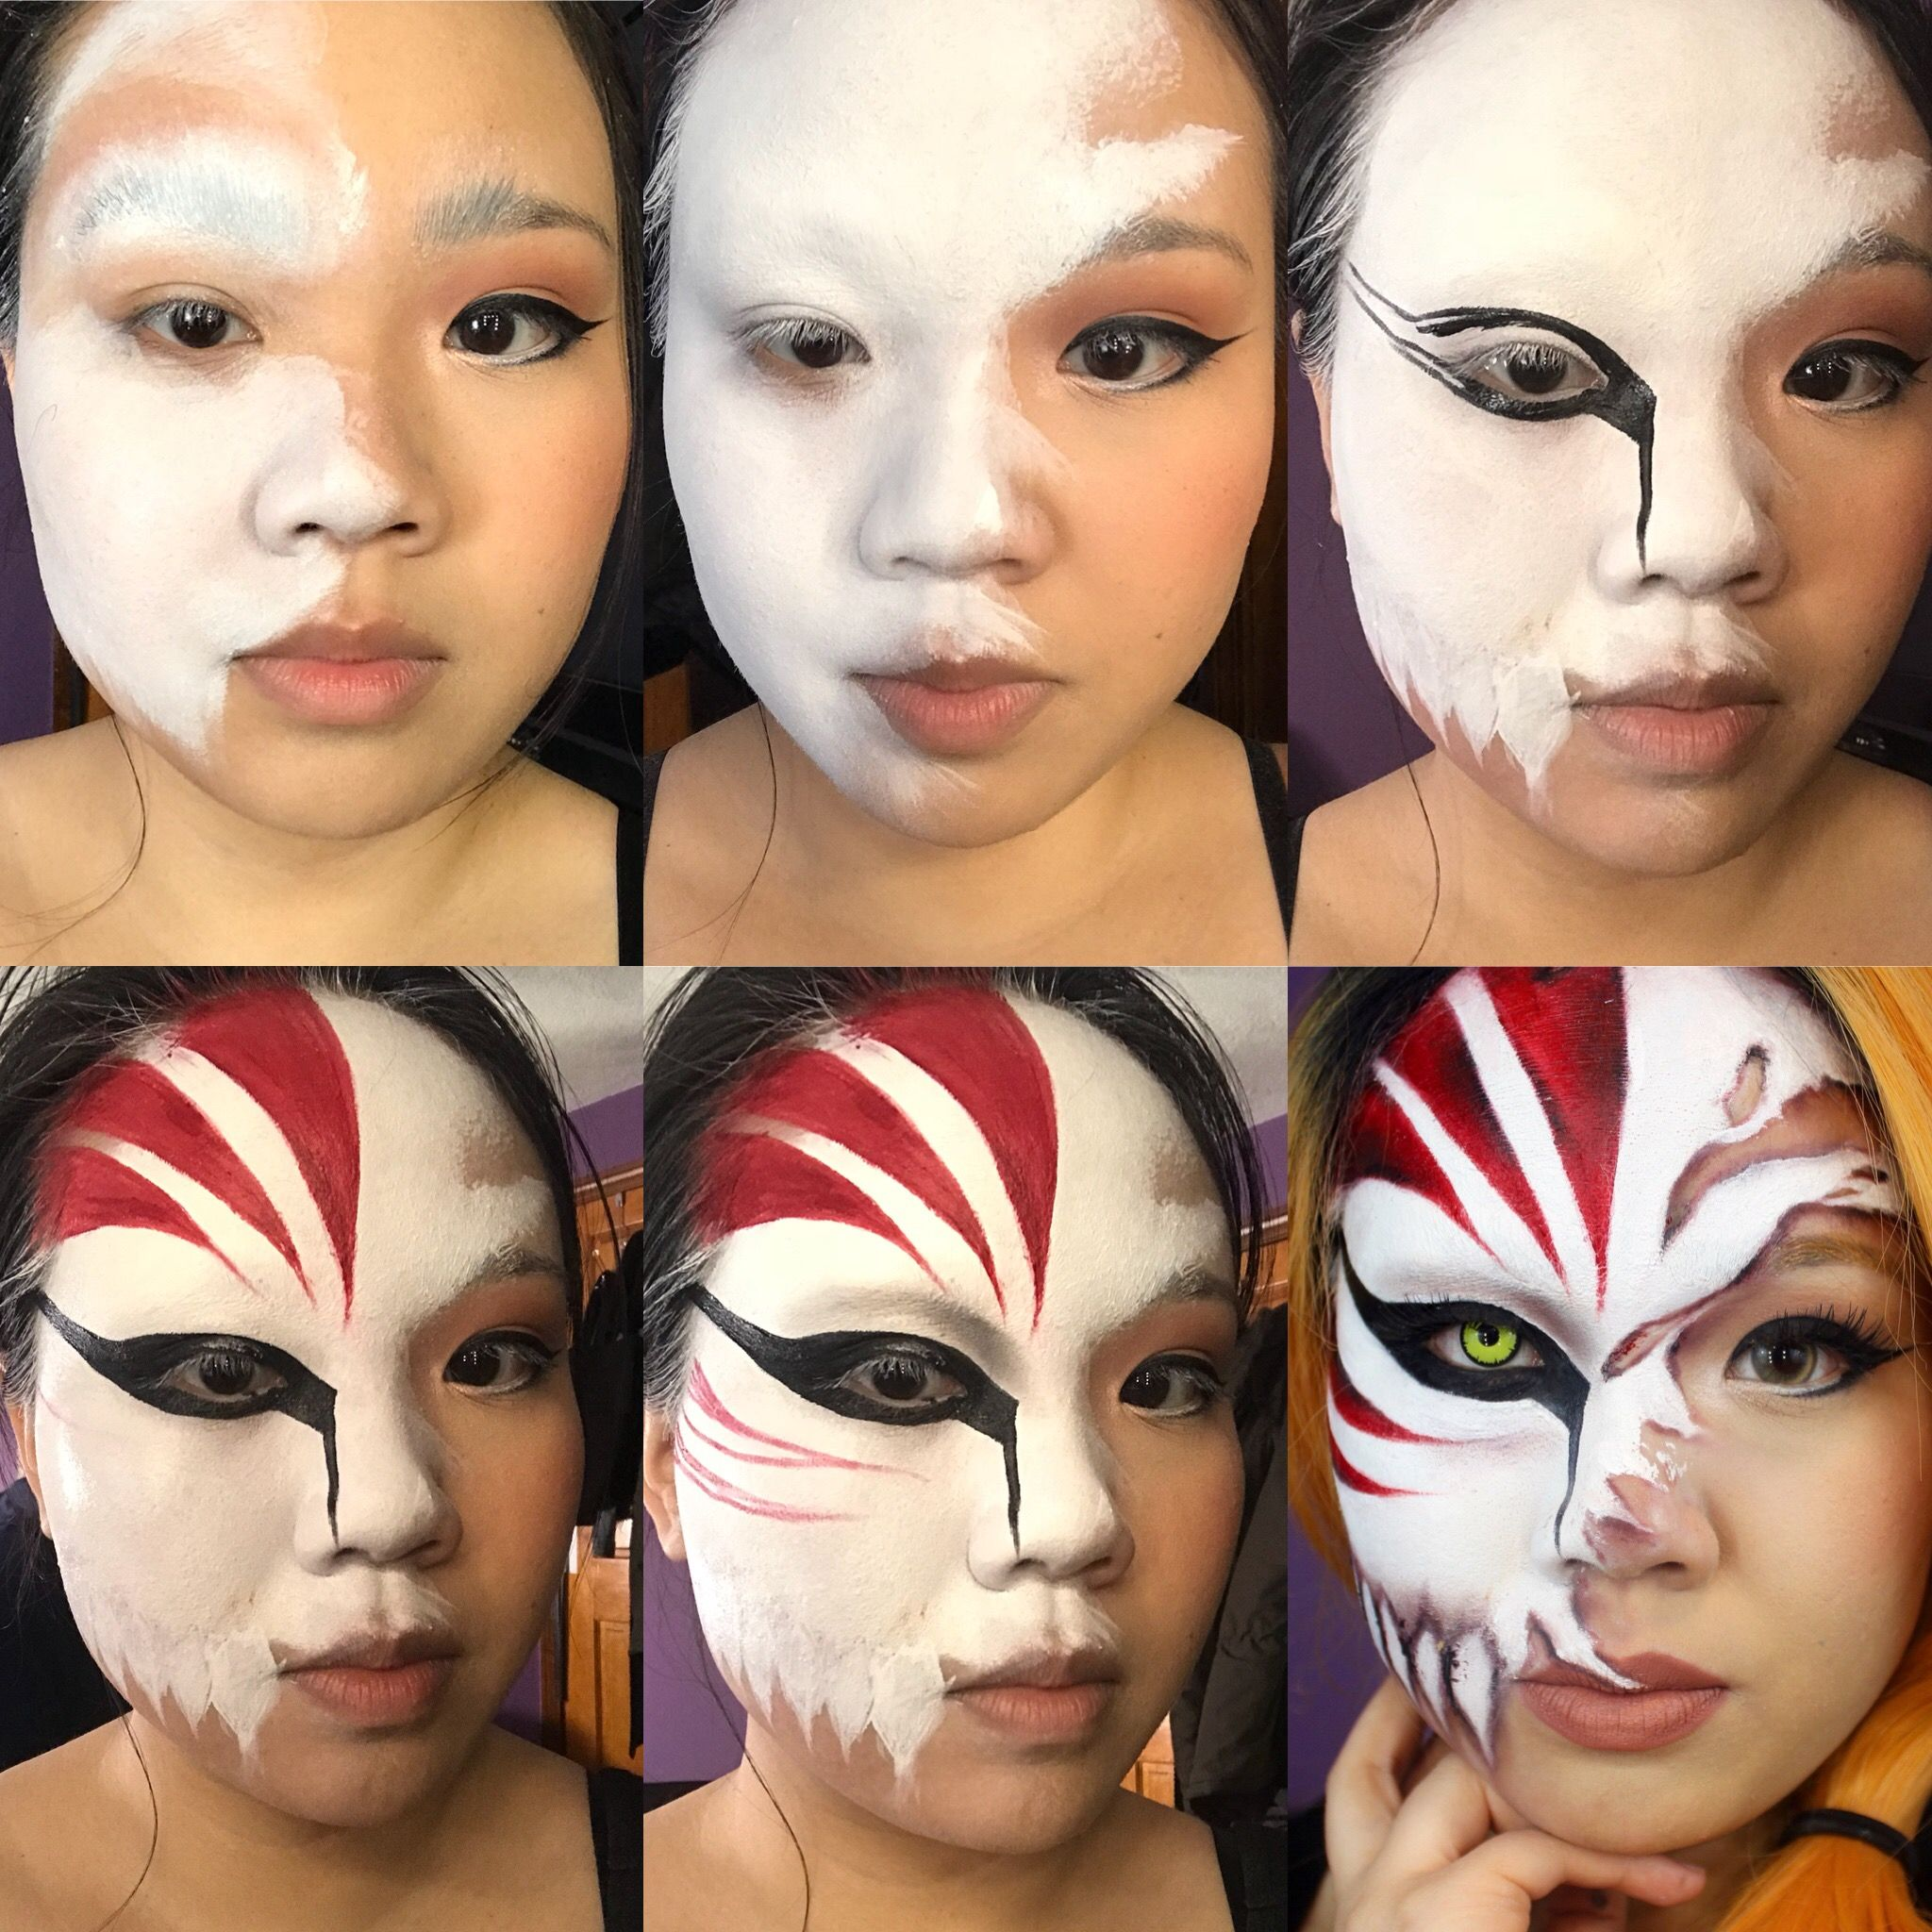 Ichigo Cosplay Face Paint Rock This Easy To Do Cosplay Makeup Look At Your Next Anime Convention It S Kawaii And Scary Ichigo Cosplay Makeup Cosplay Makeup